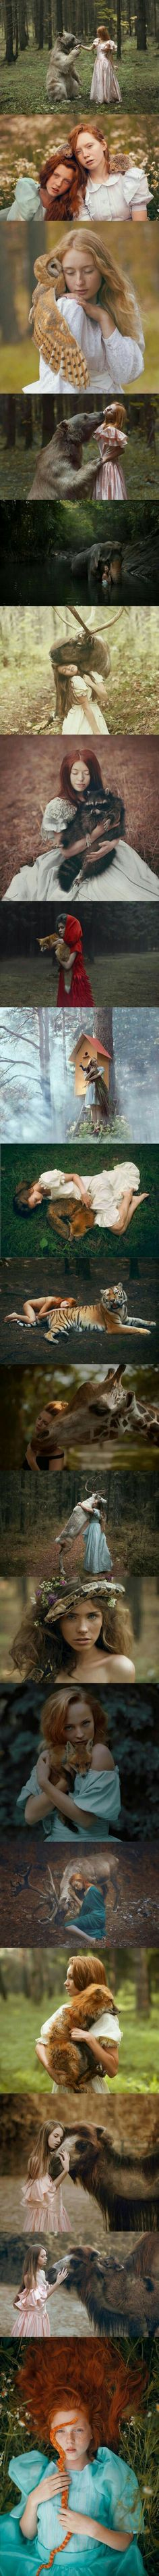 Russian photographer Katerina Plotnikova takes stunning portraits with real animals